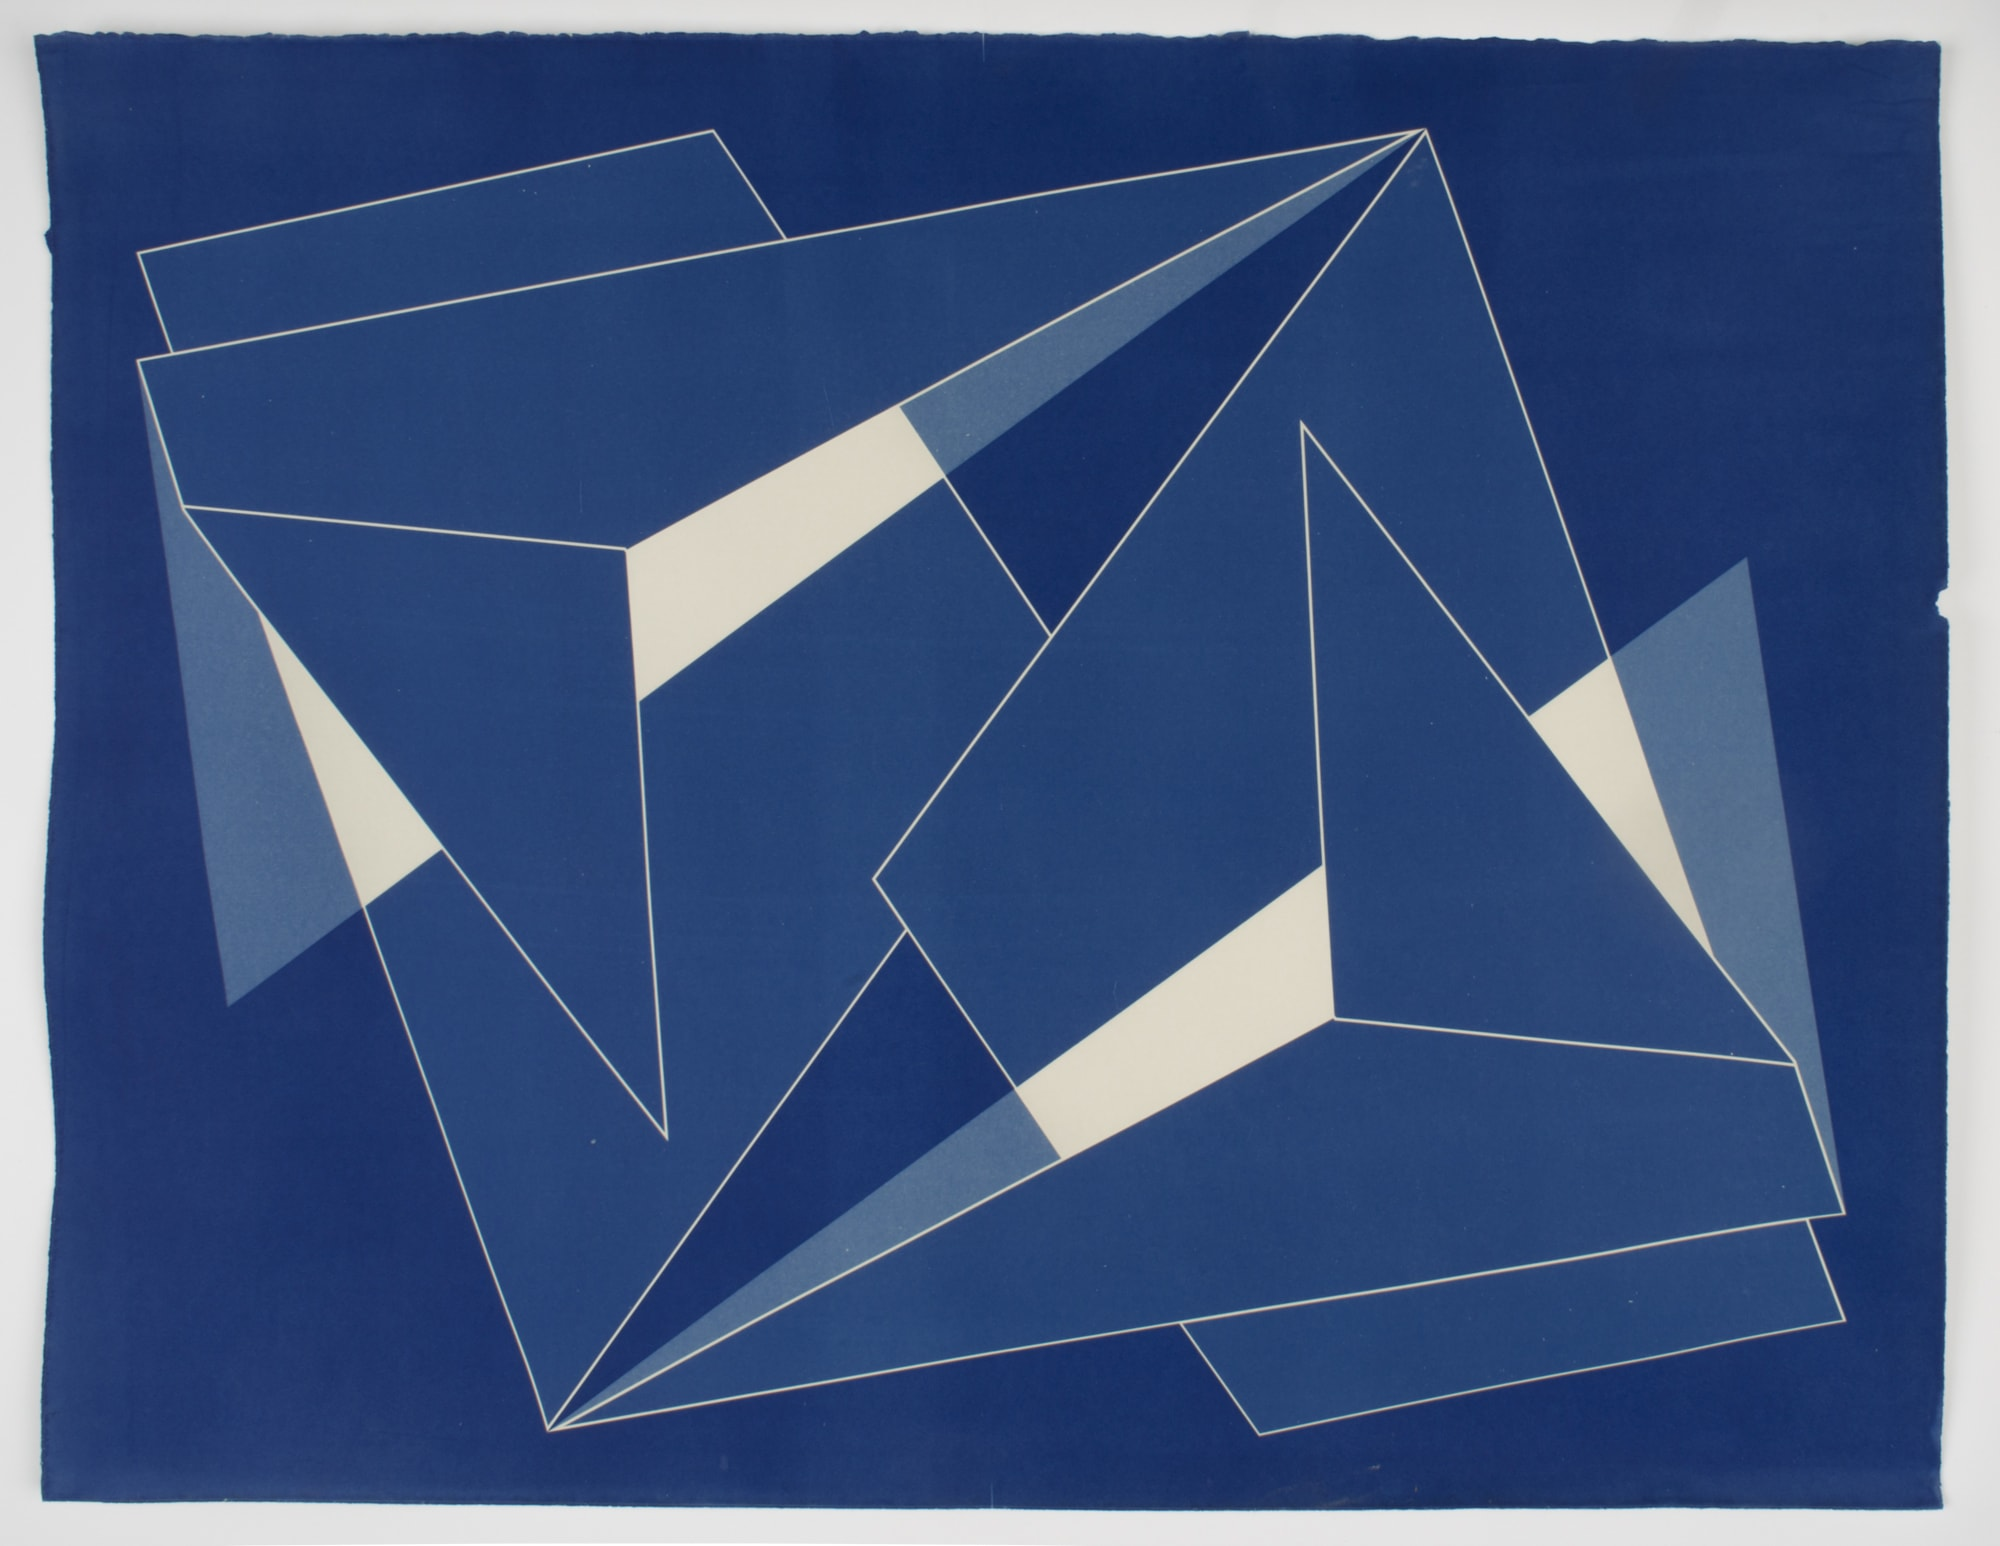 "<span class=""link fancybox-details-link""><a href=""/content/feature/165/artworks690/"">View Detail Page</a></span><div class=""medium"">Cyanotype on cotton rag paper<br /> Framed<br /> Unique</div> <div class=""dimensions"">76.2 x 61 cm<br /> 30 x 24 in</div>"